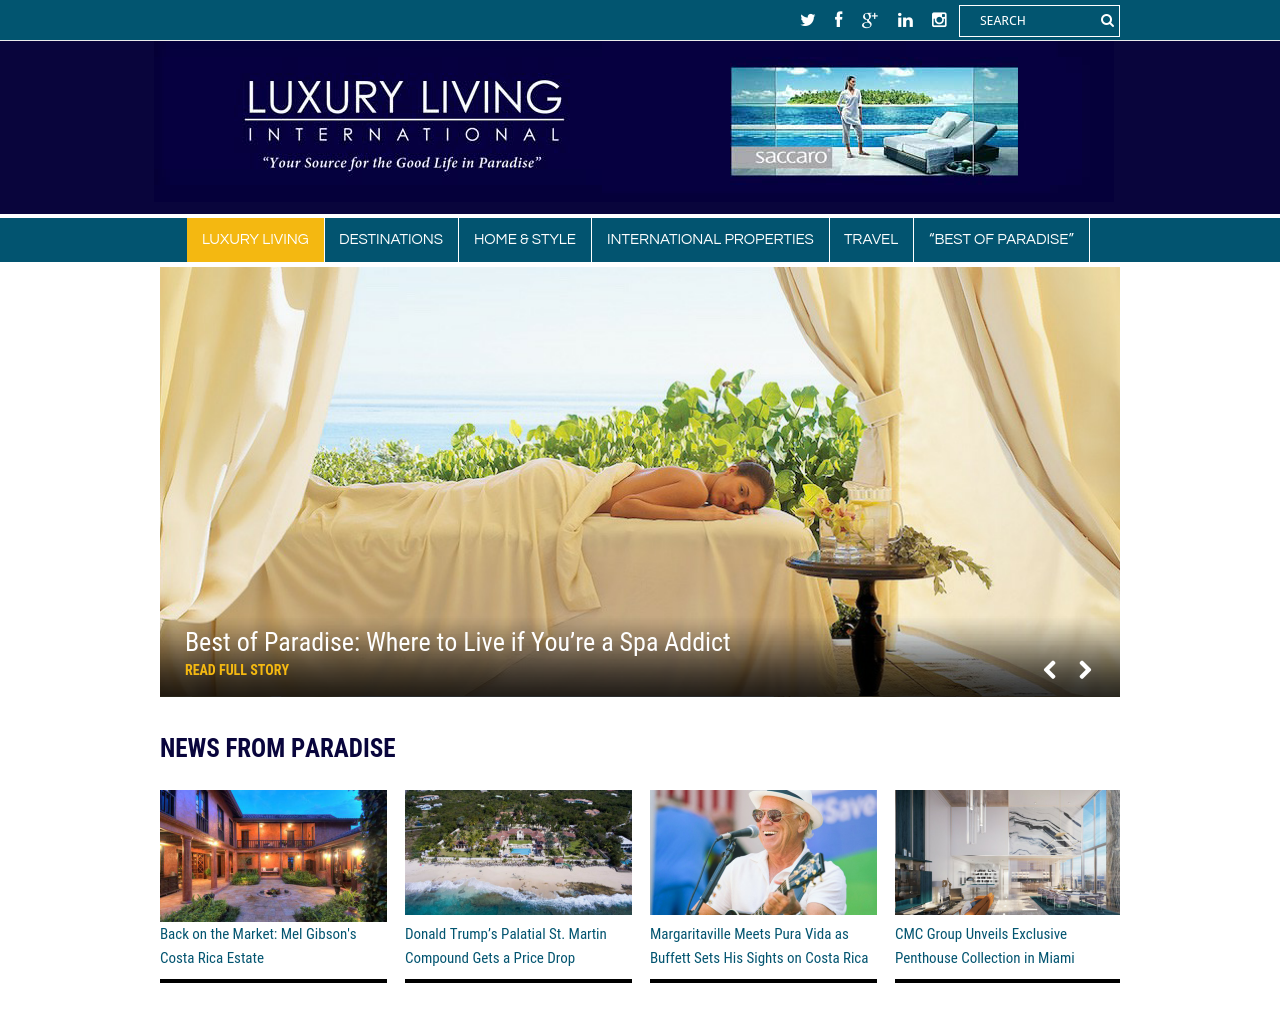 Luxury-Living-International-Advertising-Reviews-Pricing